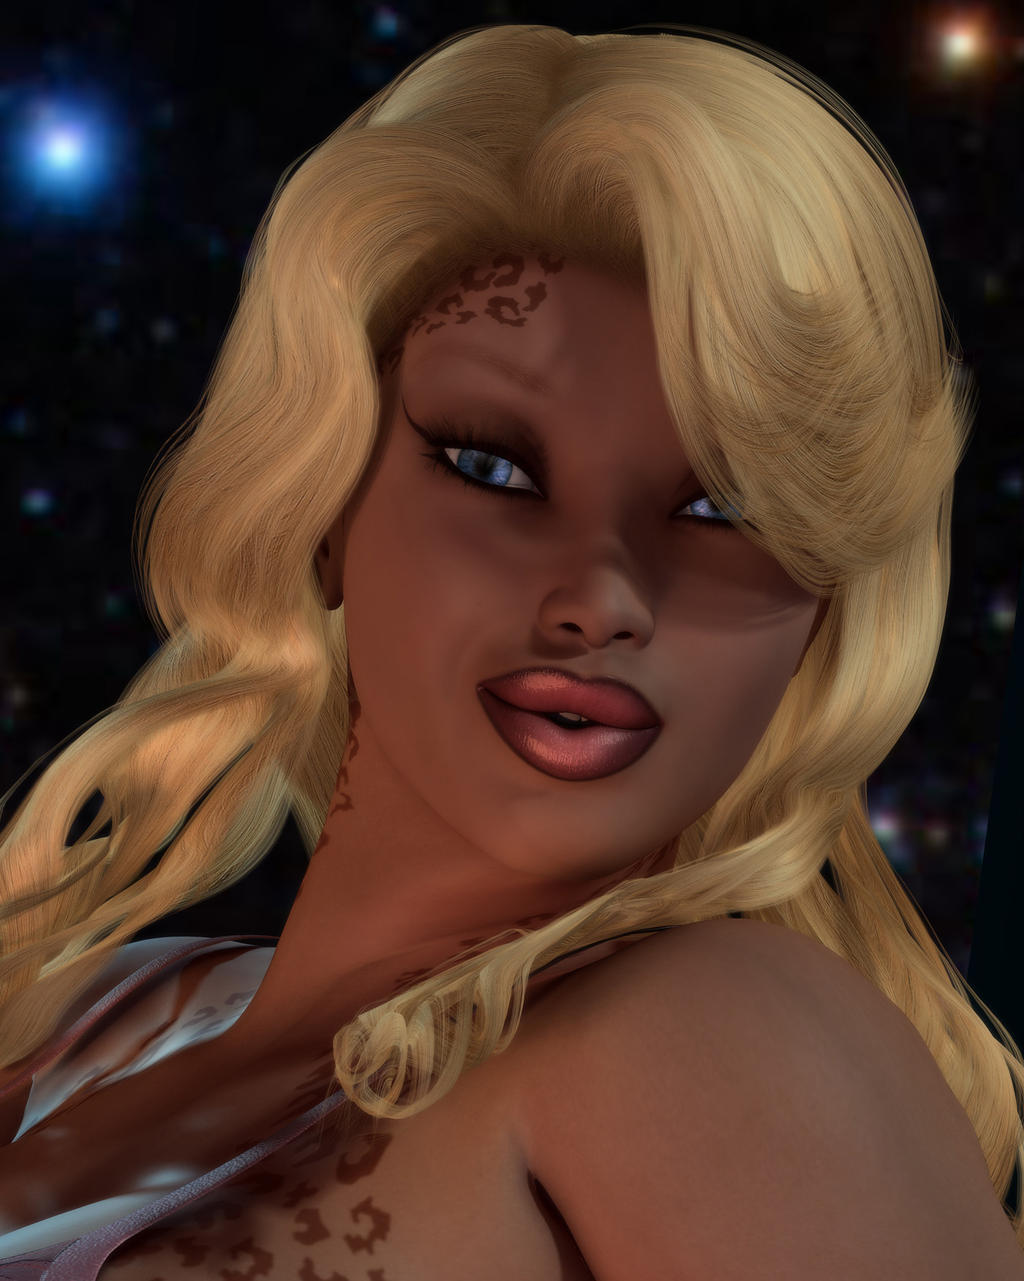 Portrait Preview - Blonde Trill by willdial